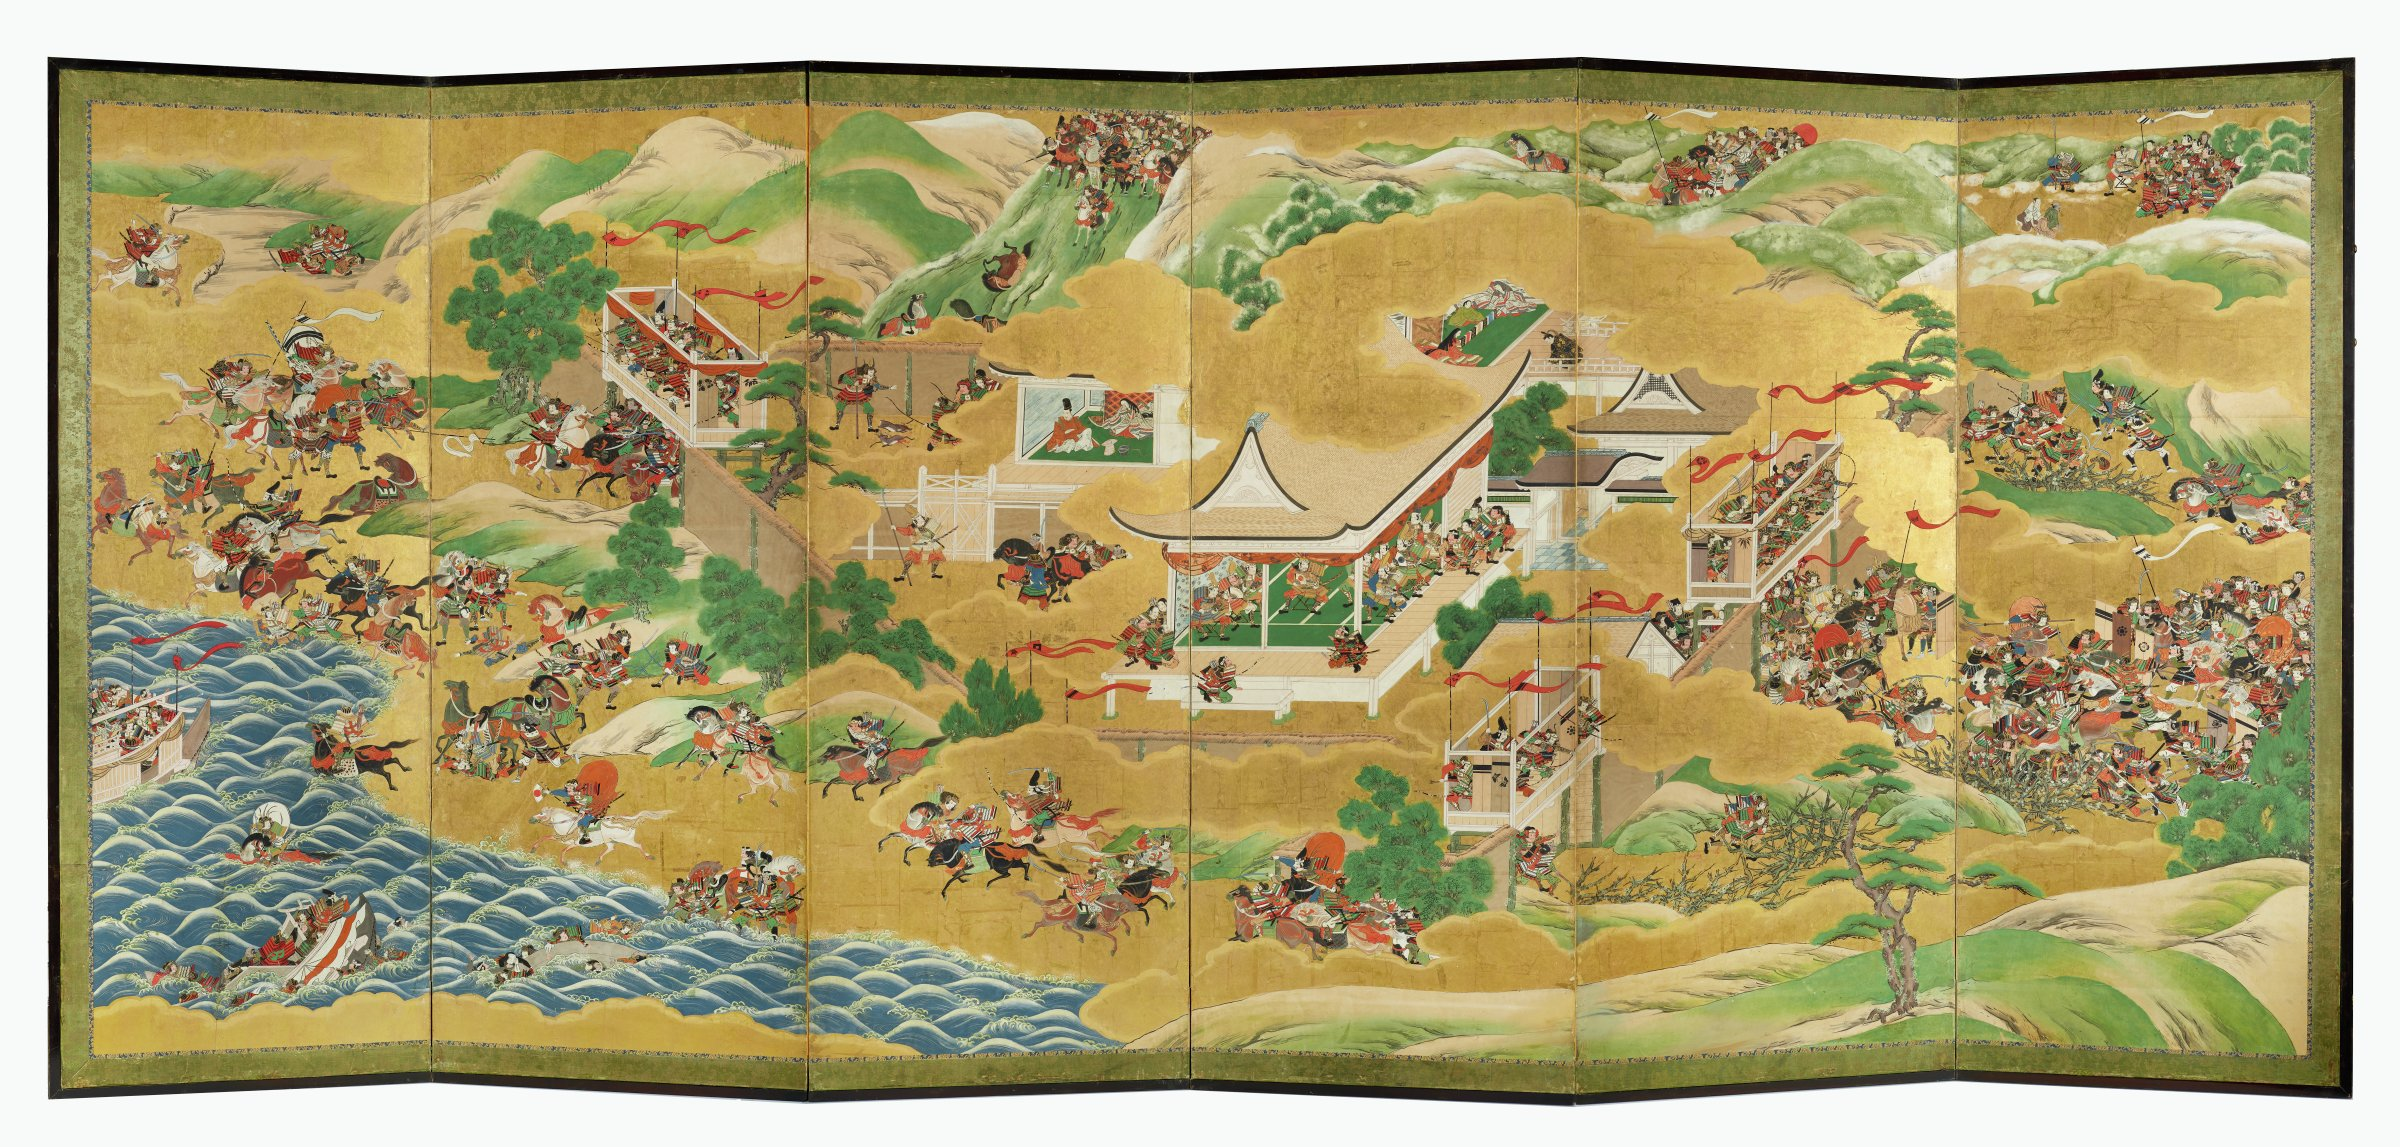 """A large-scale six-panel folding screen showing various episodes in the Battle of Ichinotani from the """"Tale of the Heike."""" Gold clouds separate scenes. Kano school Machi-eshi workshop piece. Companion screen whereabouts unknown.Mon depicted on shields include Chiba's 9-dots"""